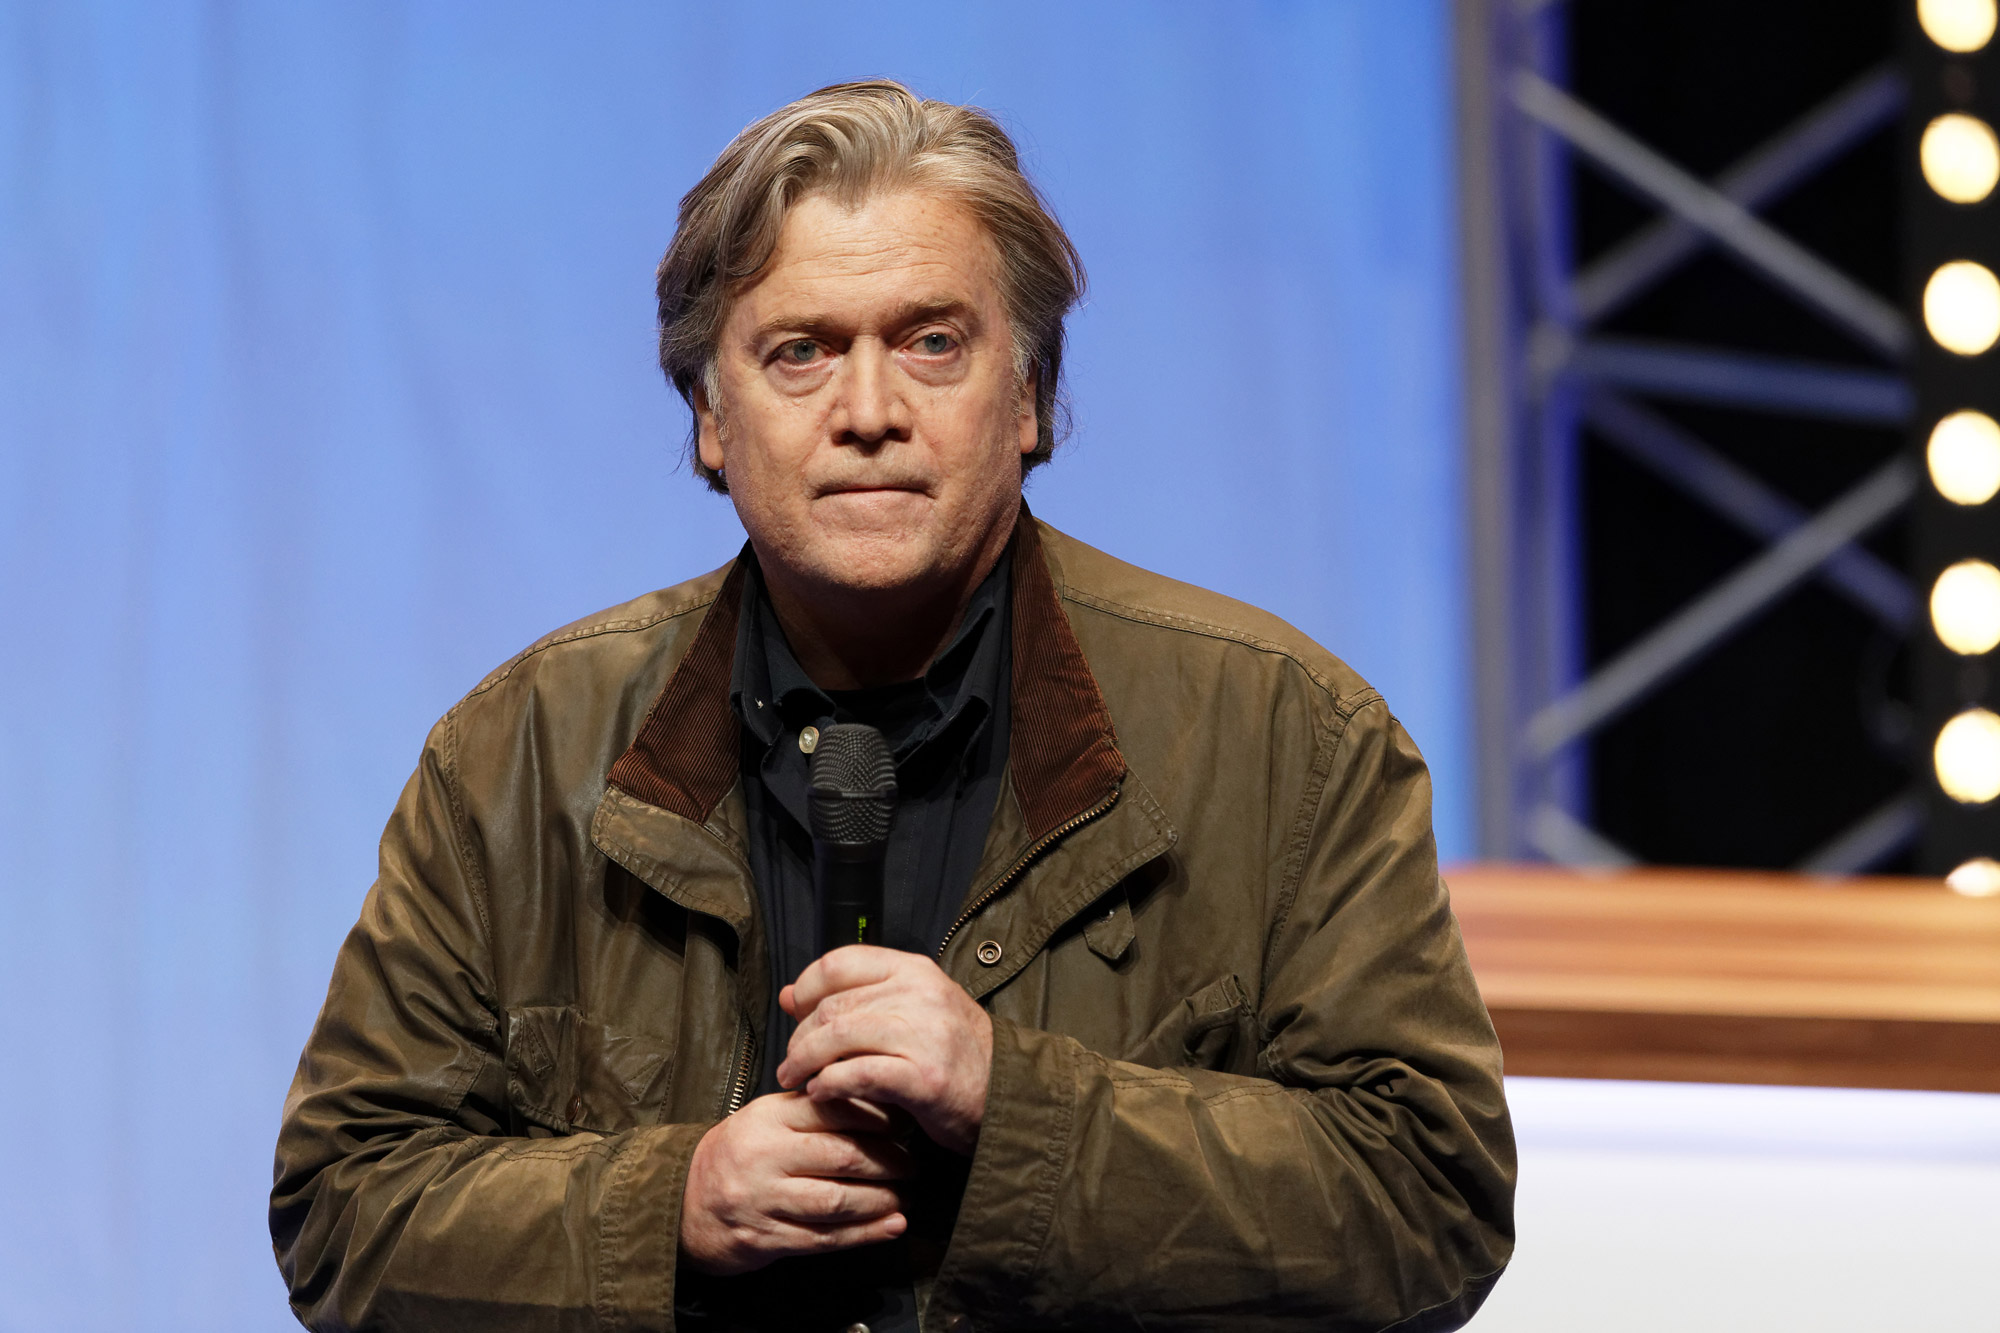 Former US President advisor Steve Bannon delivers a speech during the Front National party annual congress on March 10, 2018 in Lille, France.